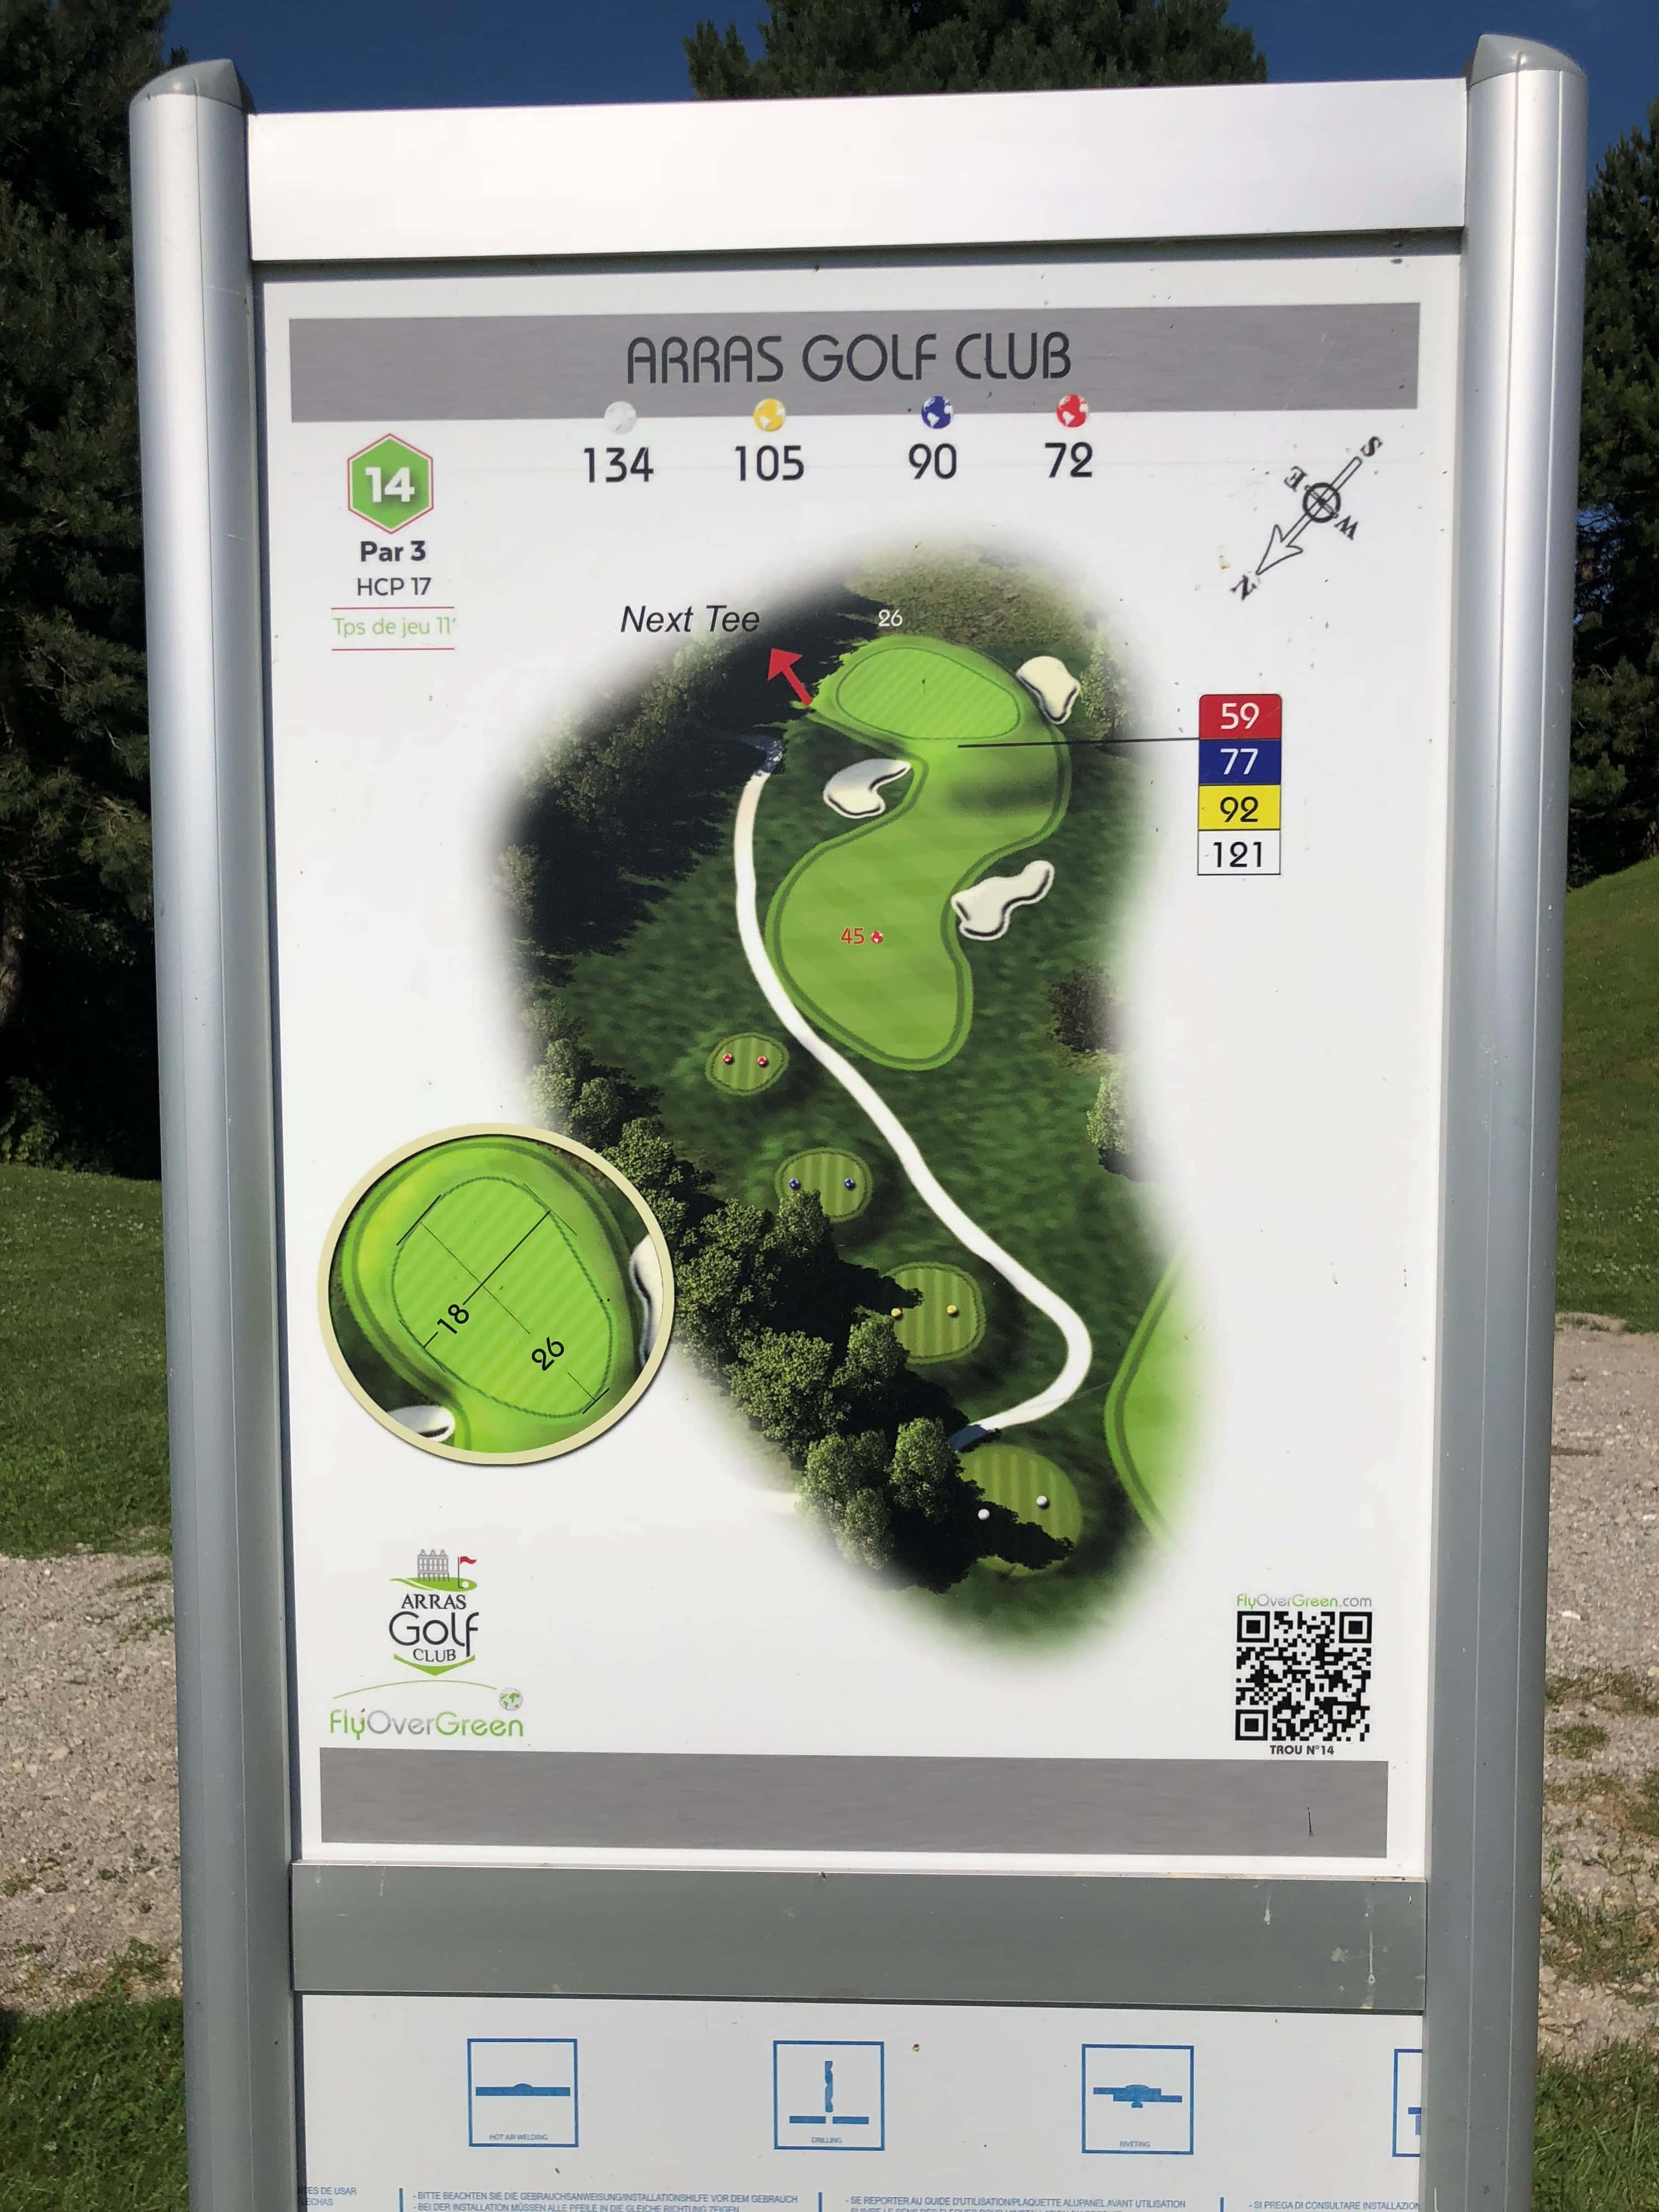 Tee 14, Arras Golf Club, Arras Golf Resort, Parcours La Vallée, Distance 134m, Distance 105m, Distance 90m, Distance 72m, Par 3